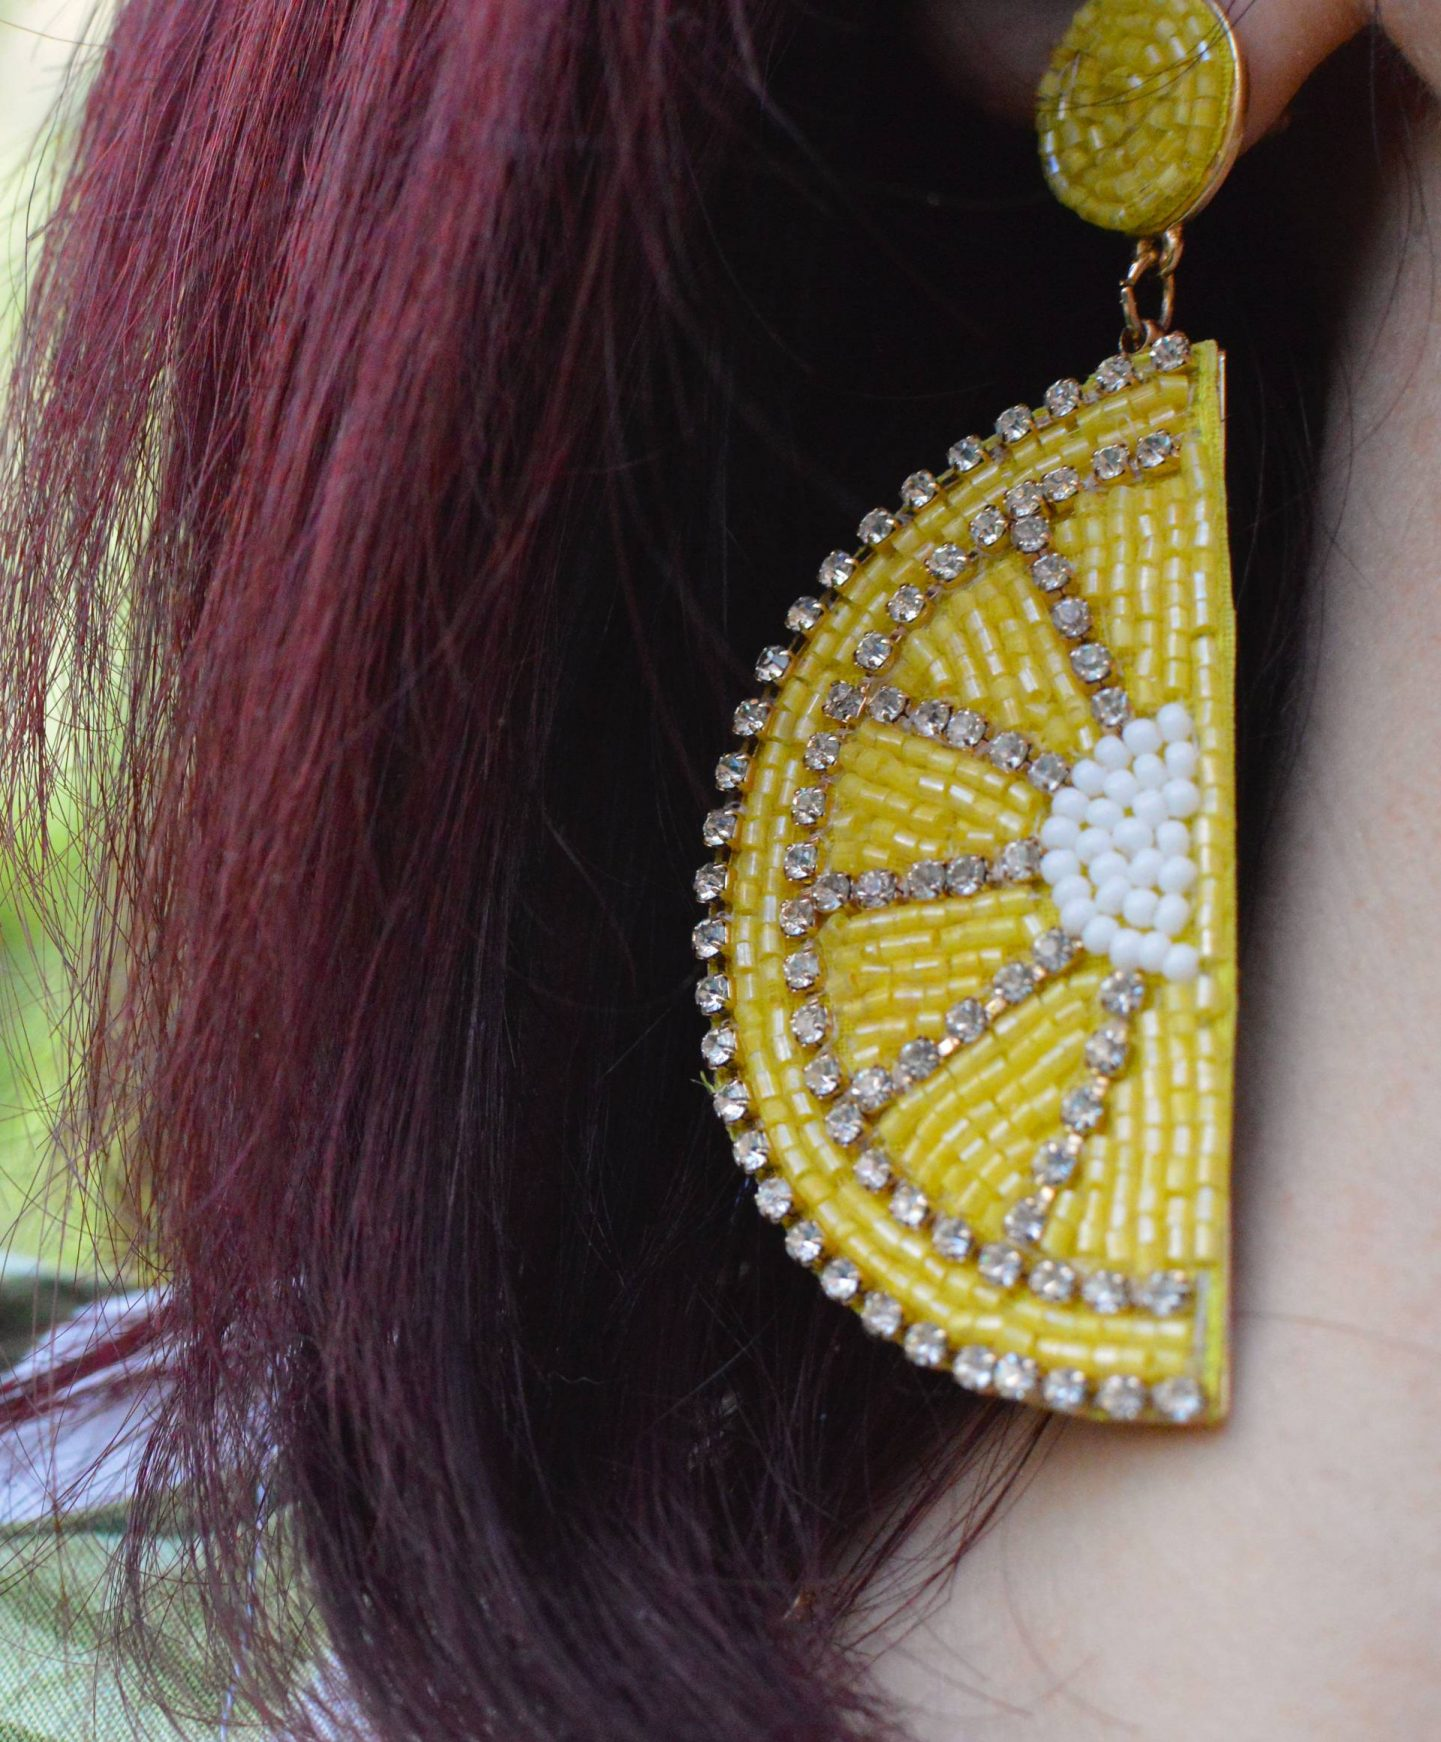 H&M lemon earrings